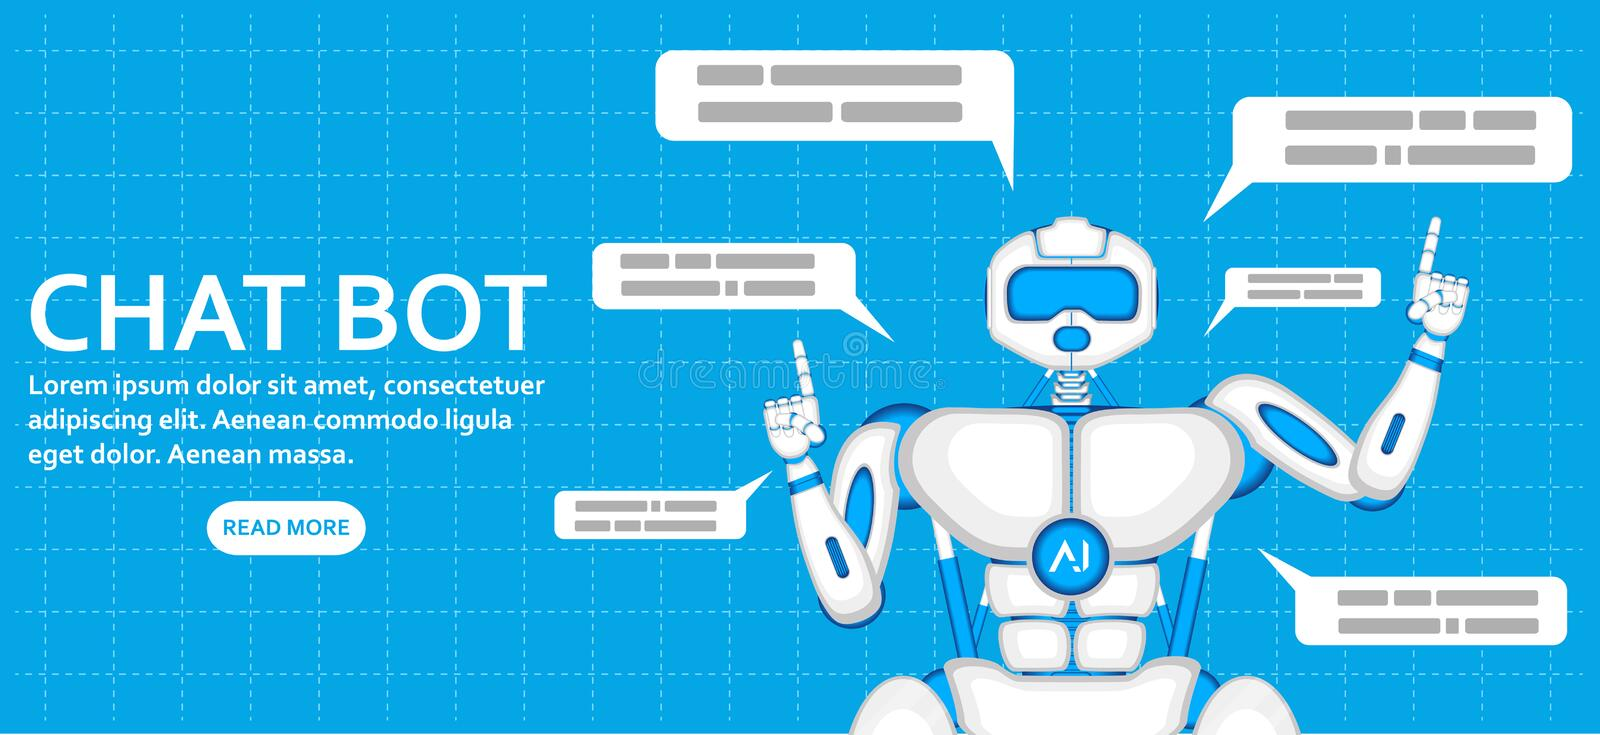 Trendy chatbot application with dialogue window royalty free illustration